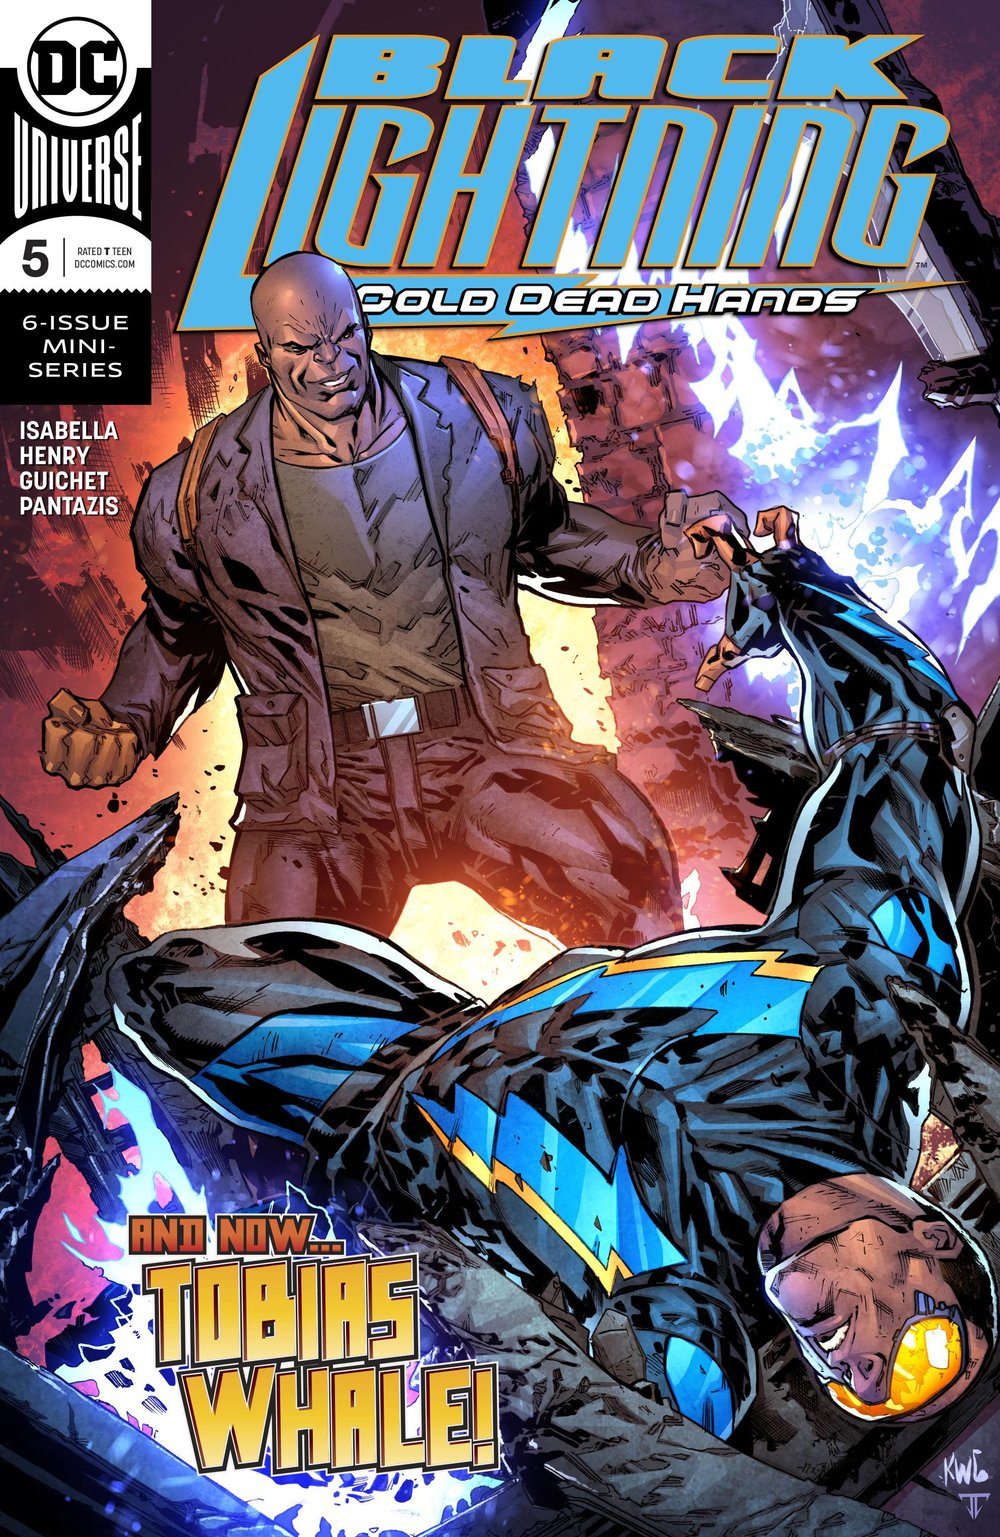 BLACK LIGHTNING COLD DEAD HANDS 5 of 6.jpg